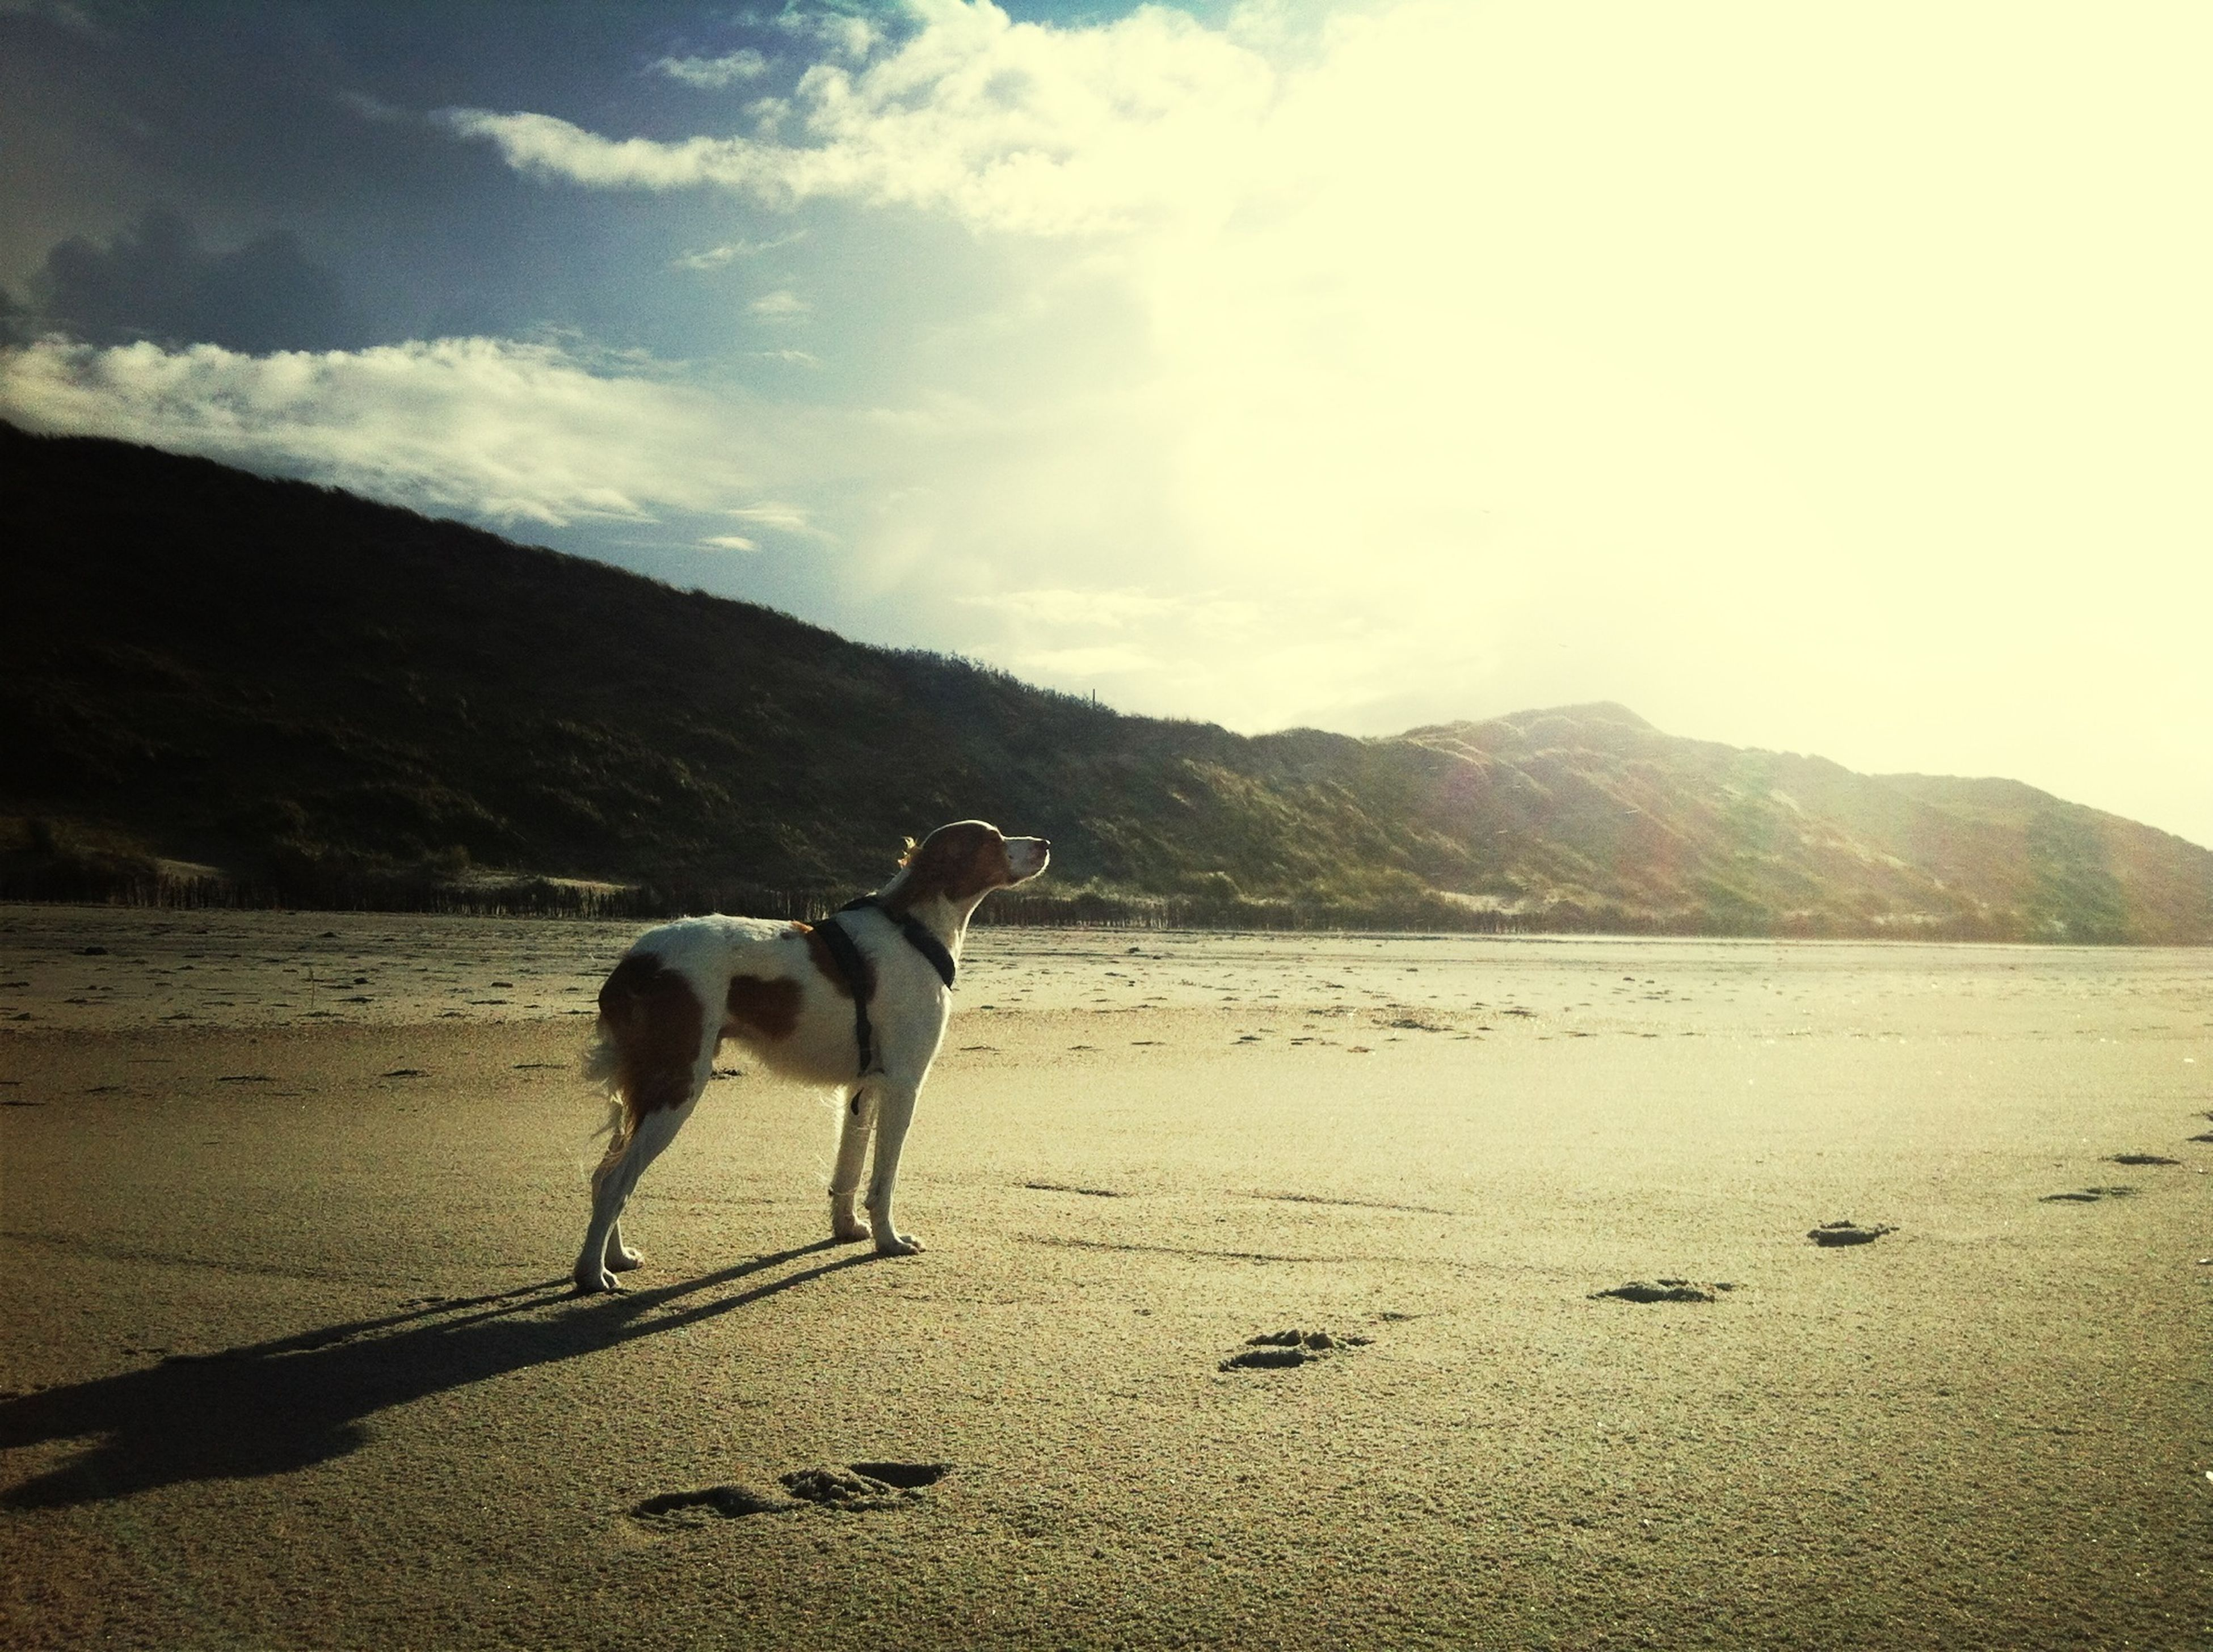 domestic animals, animal themes, dog, one animal, mammal, pets, sky, sand, beach, mountain, full length, walking, nature, standing, tranquil scene, sunlight, tranquility, landscape, shore, day